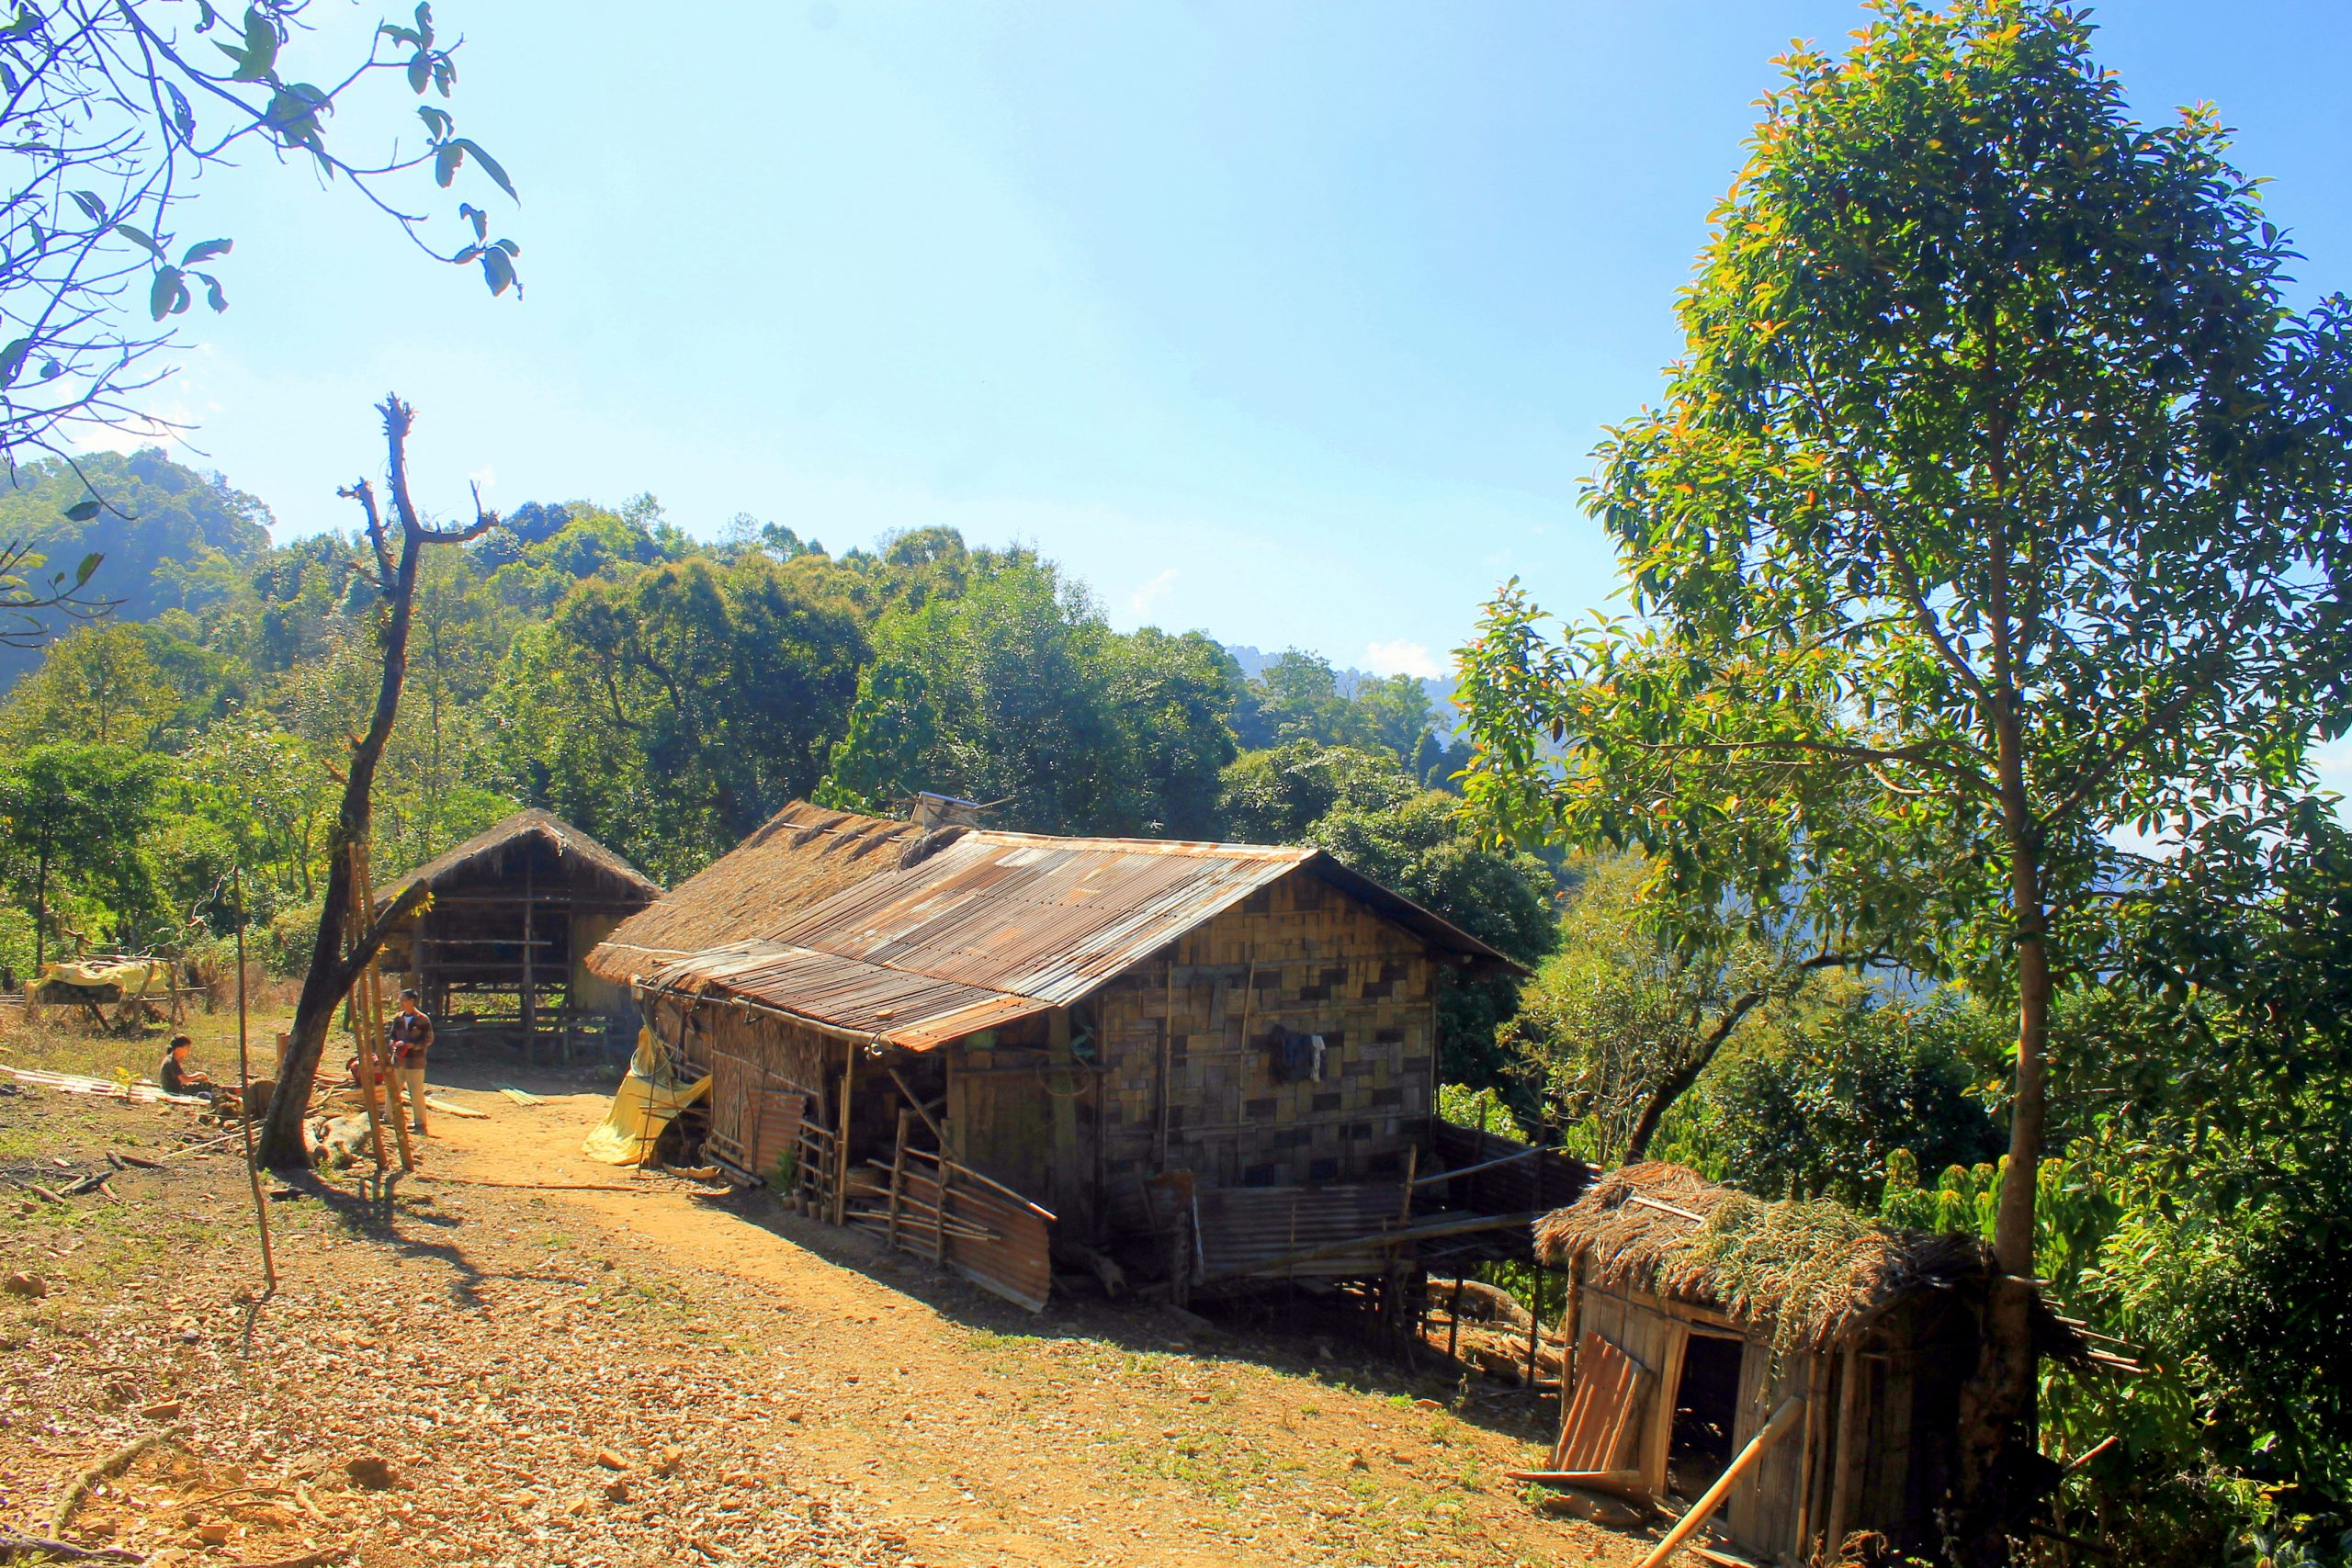 huts and trees